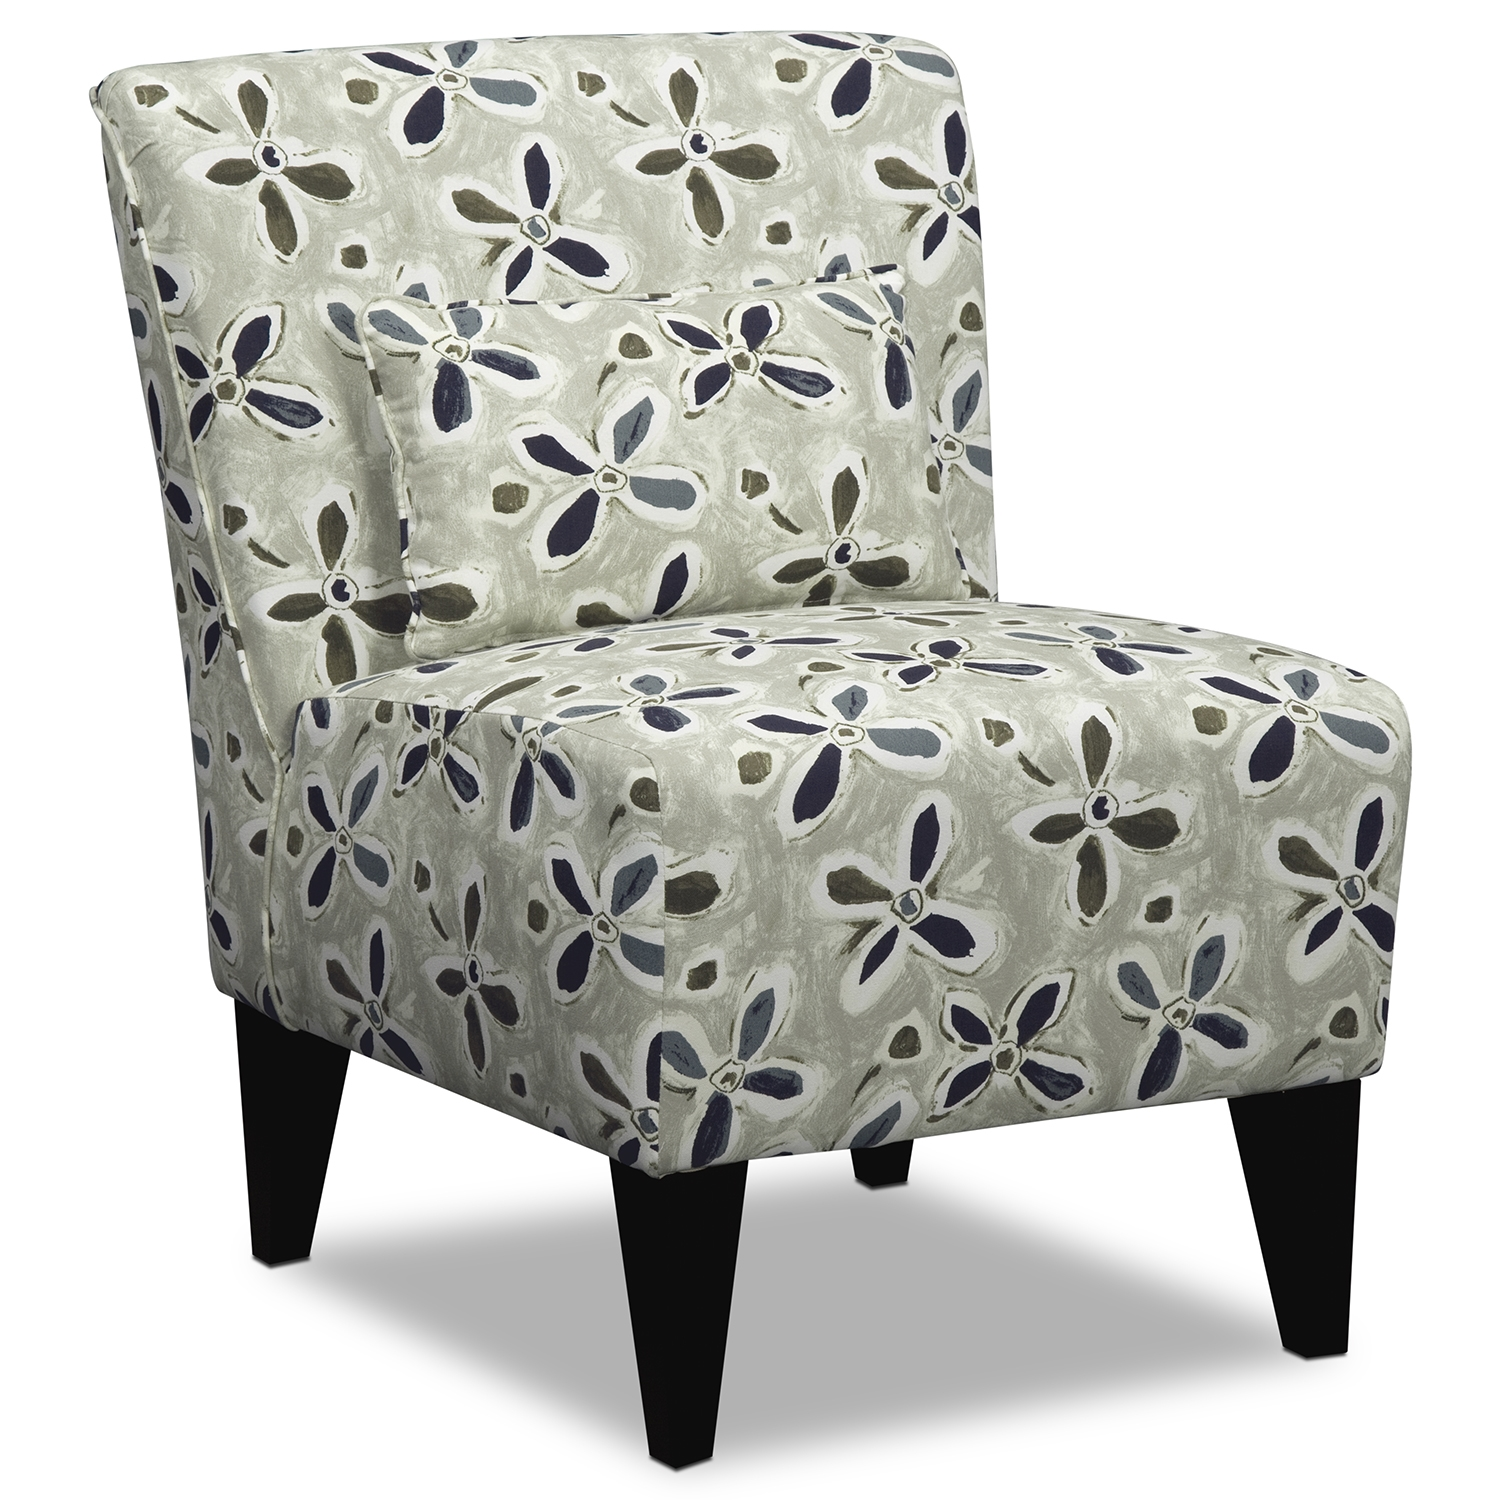 furniture town target africa kmart yellow gumtree chairs grey cape occasional for affordable leather contemporary chair modern pink room living velvet accent table full size free